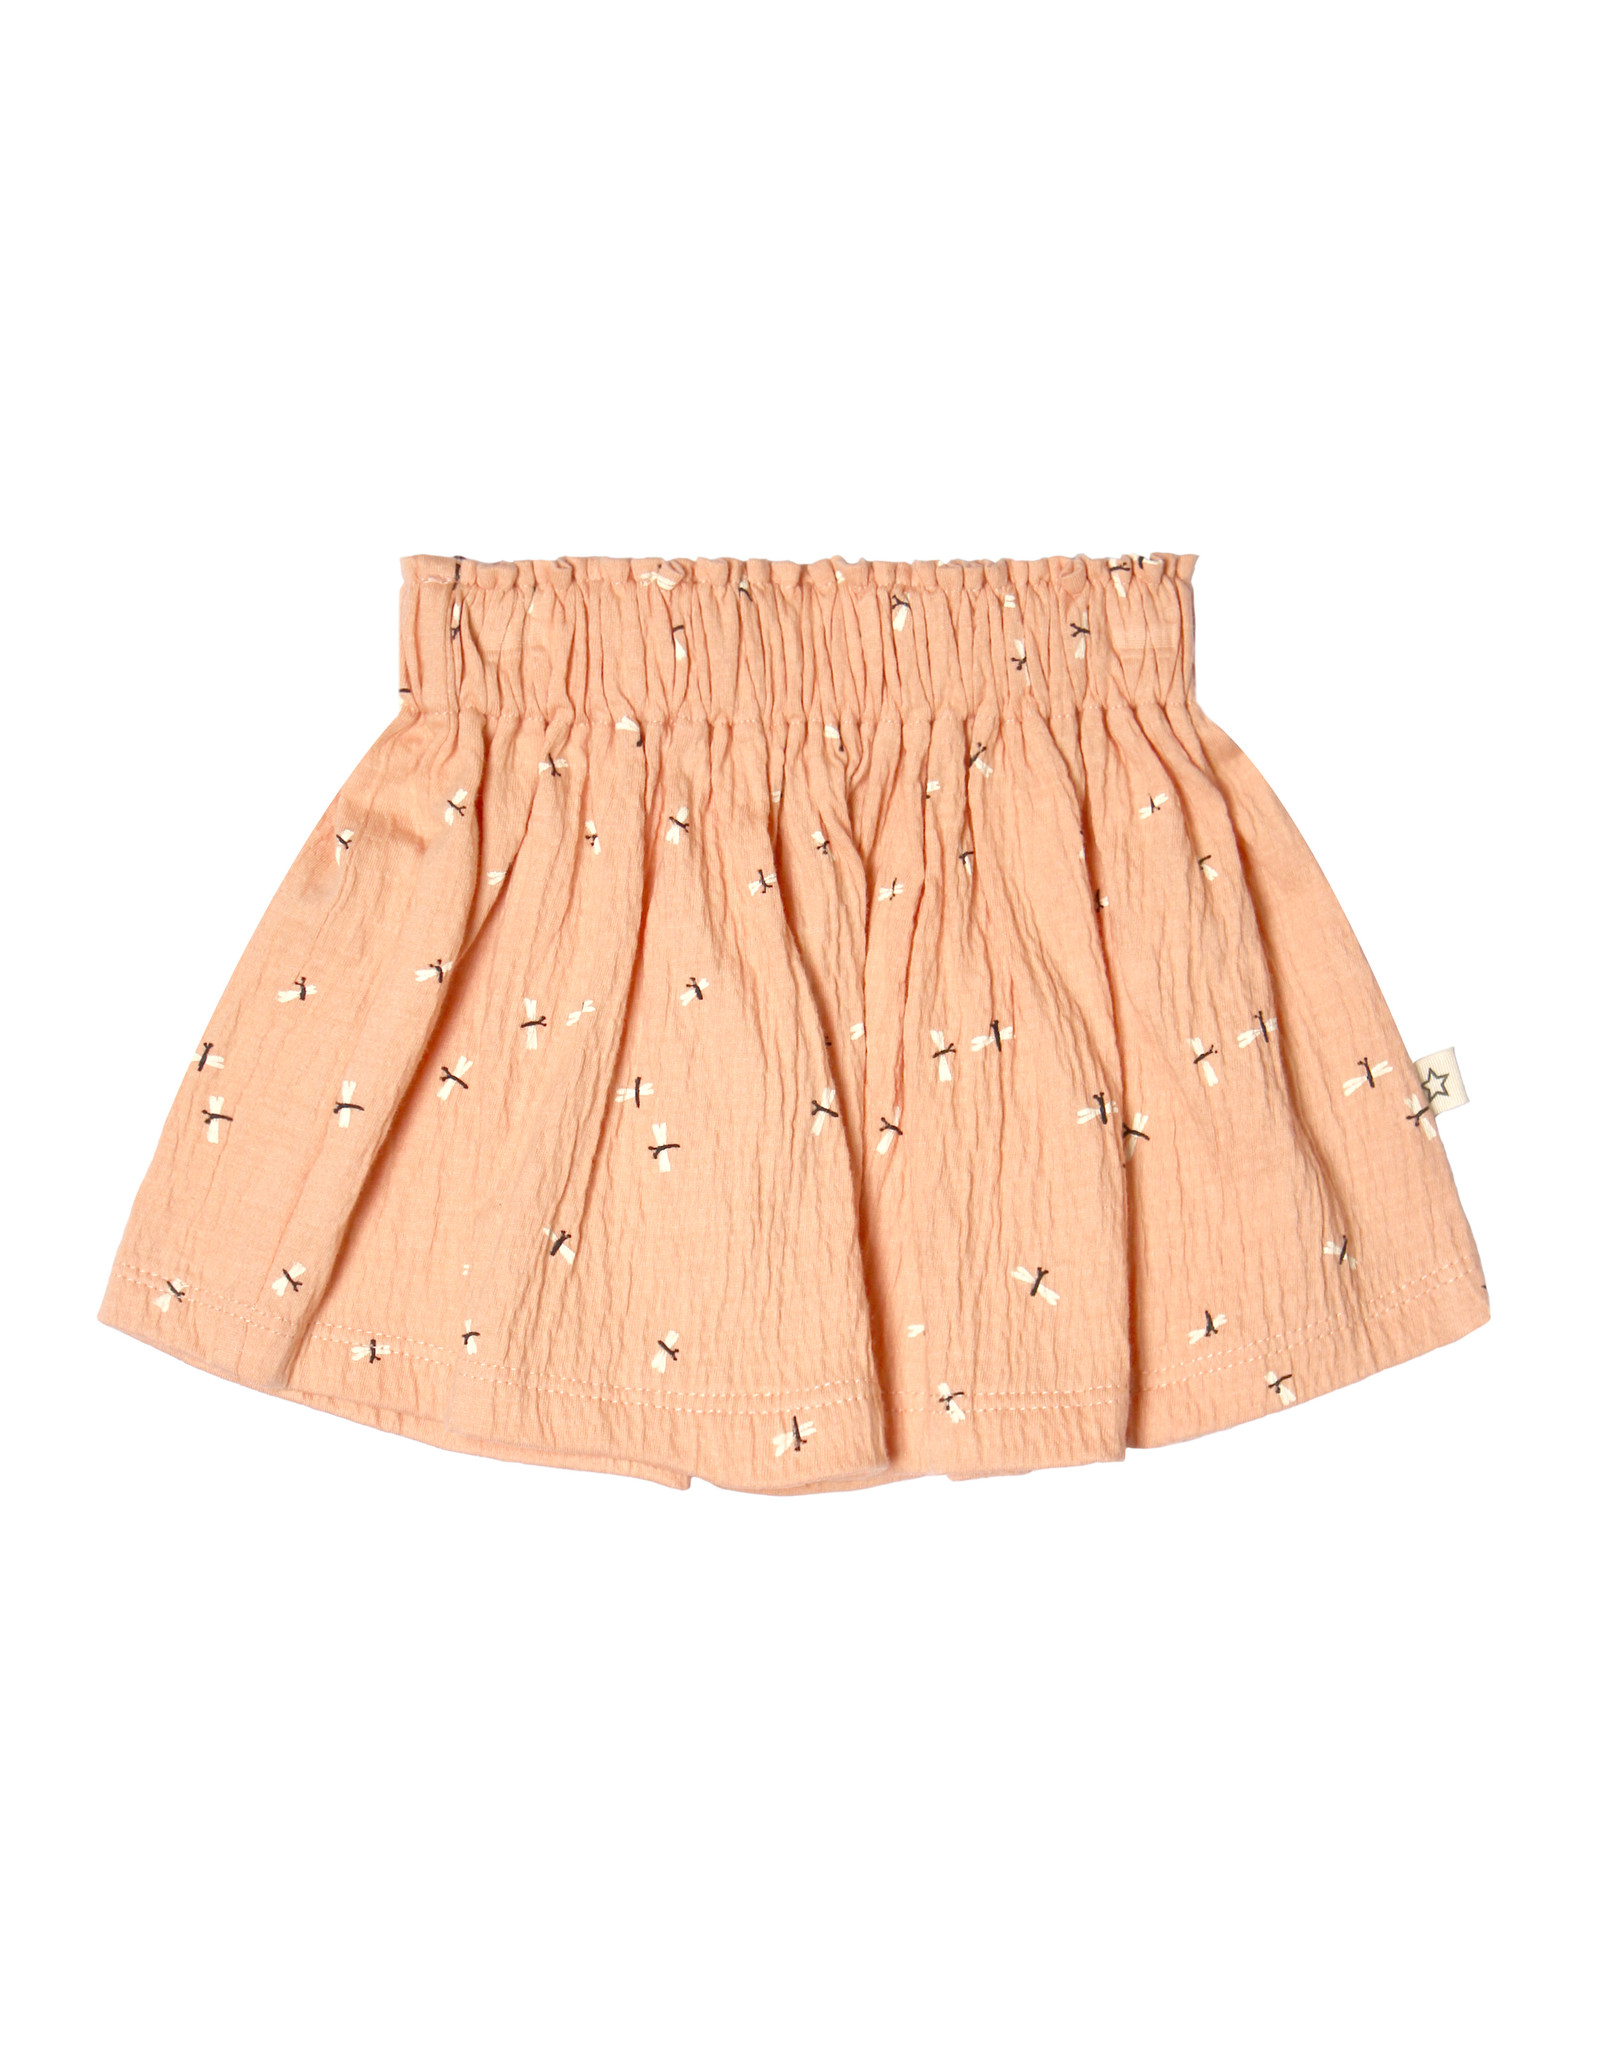 Your Wishes Dragonfly   Skirt